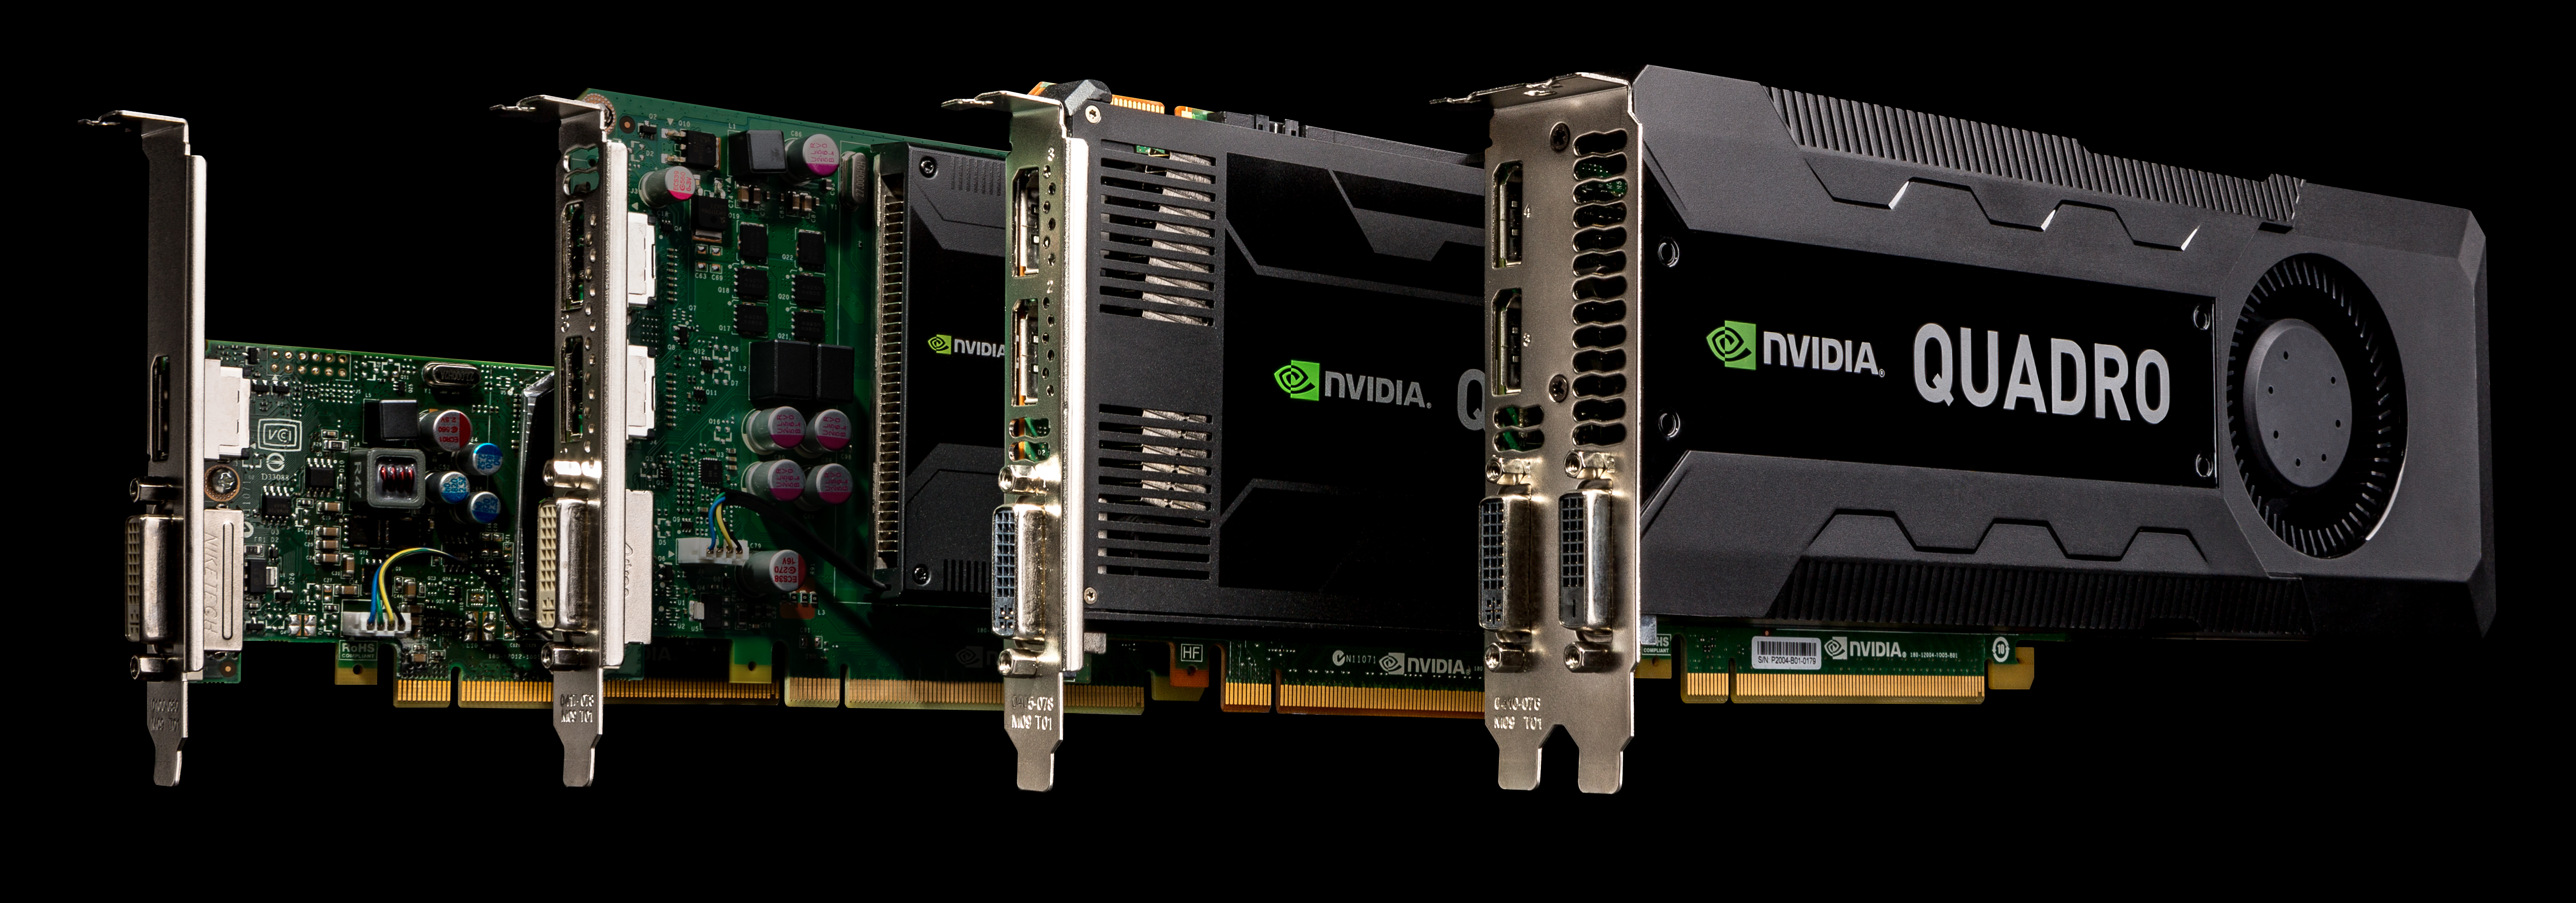 NVIDIA Launches Quadro K4000, K2000, K2000D, & K600